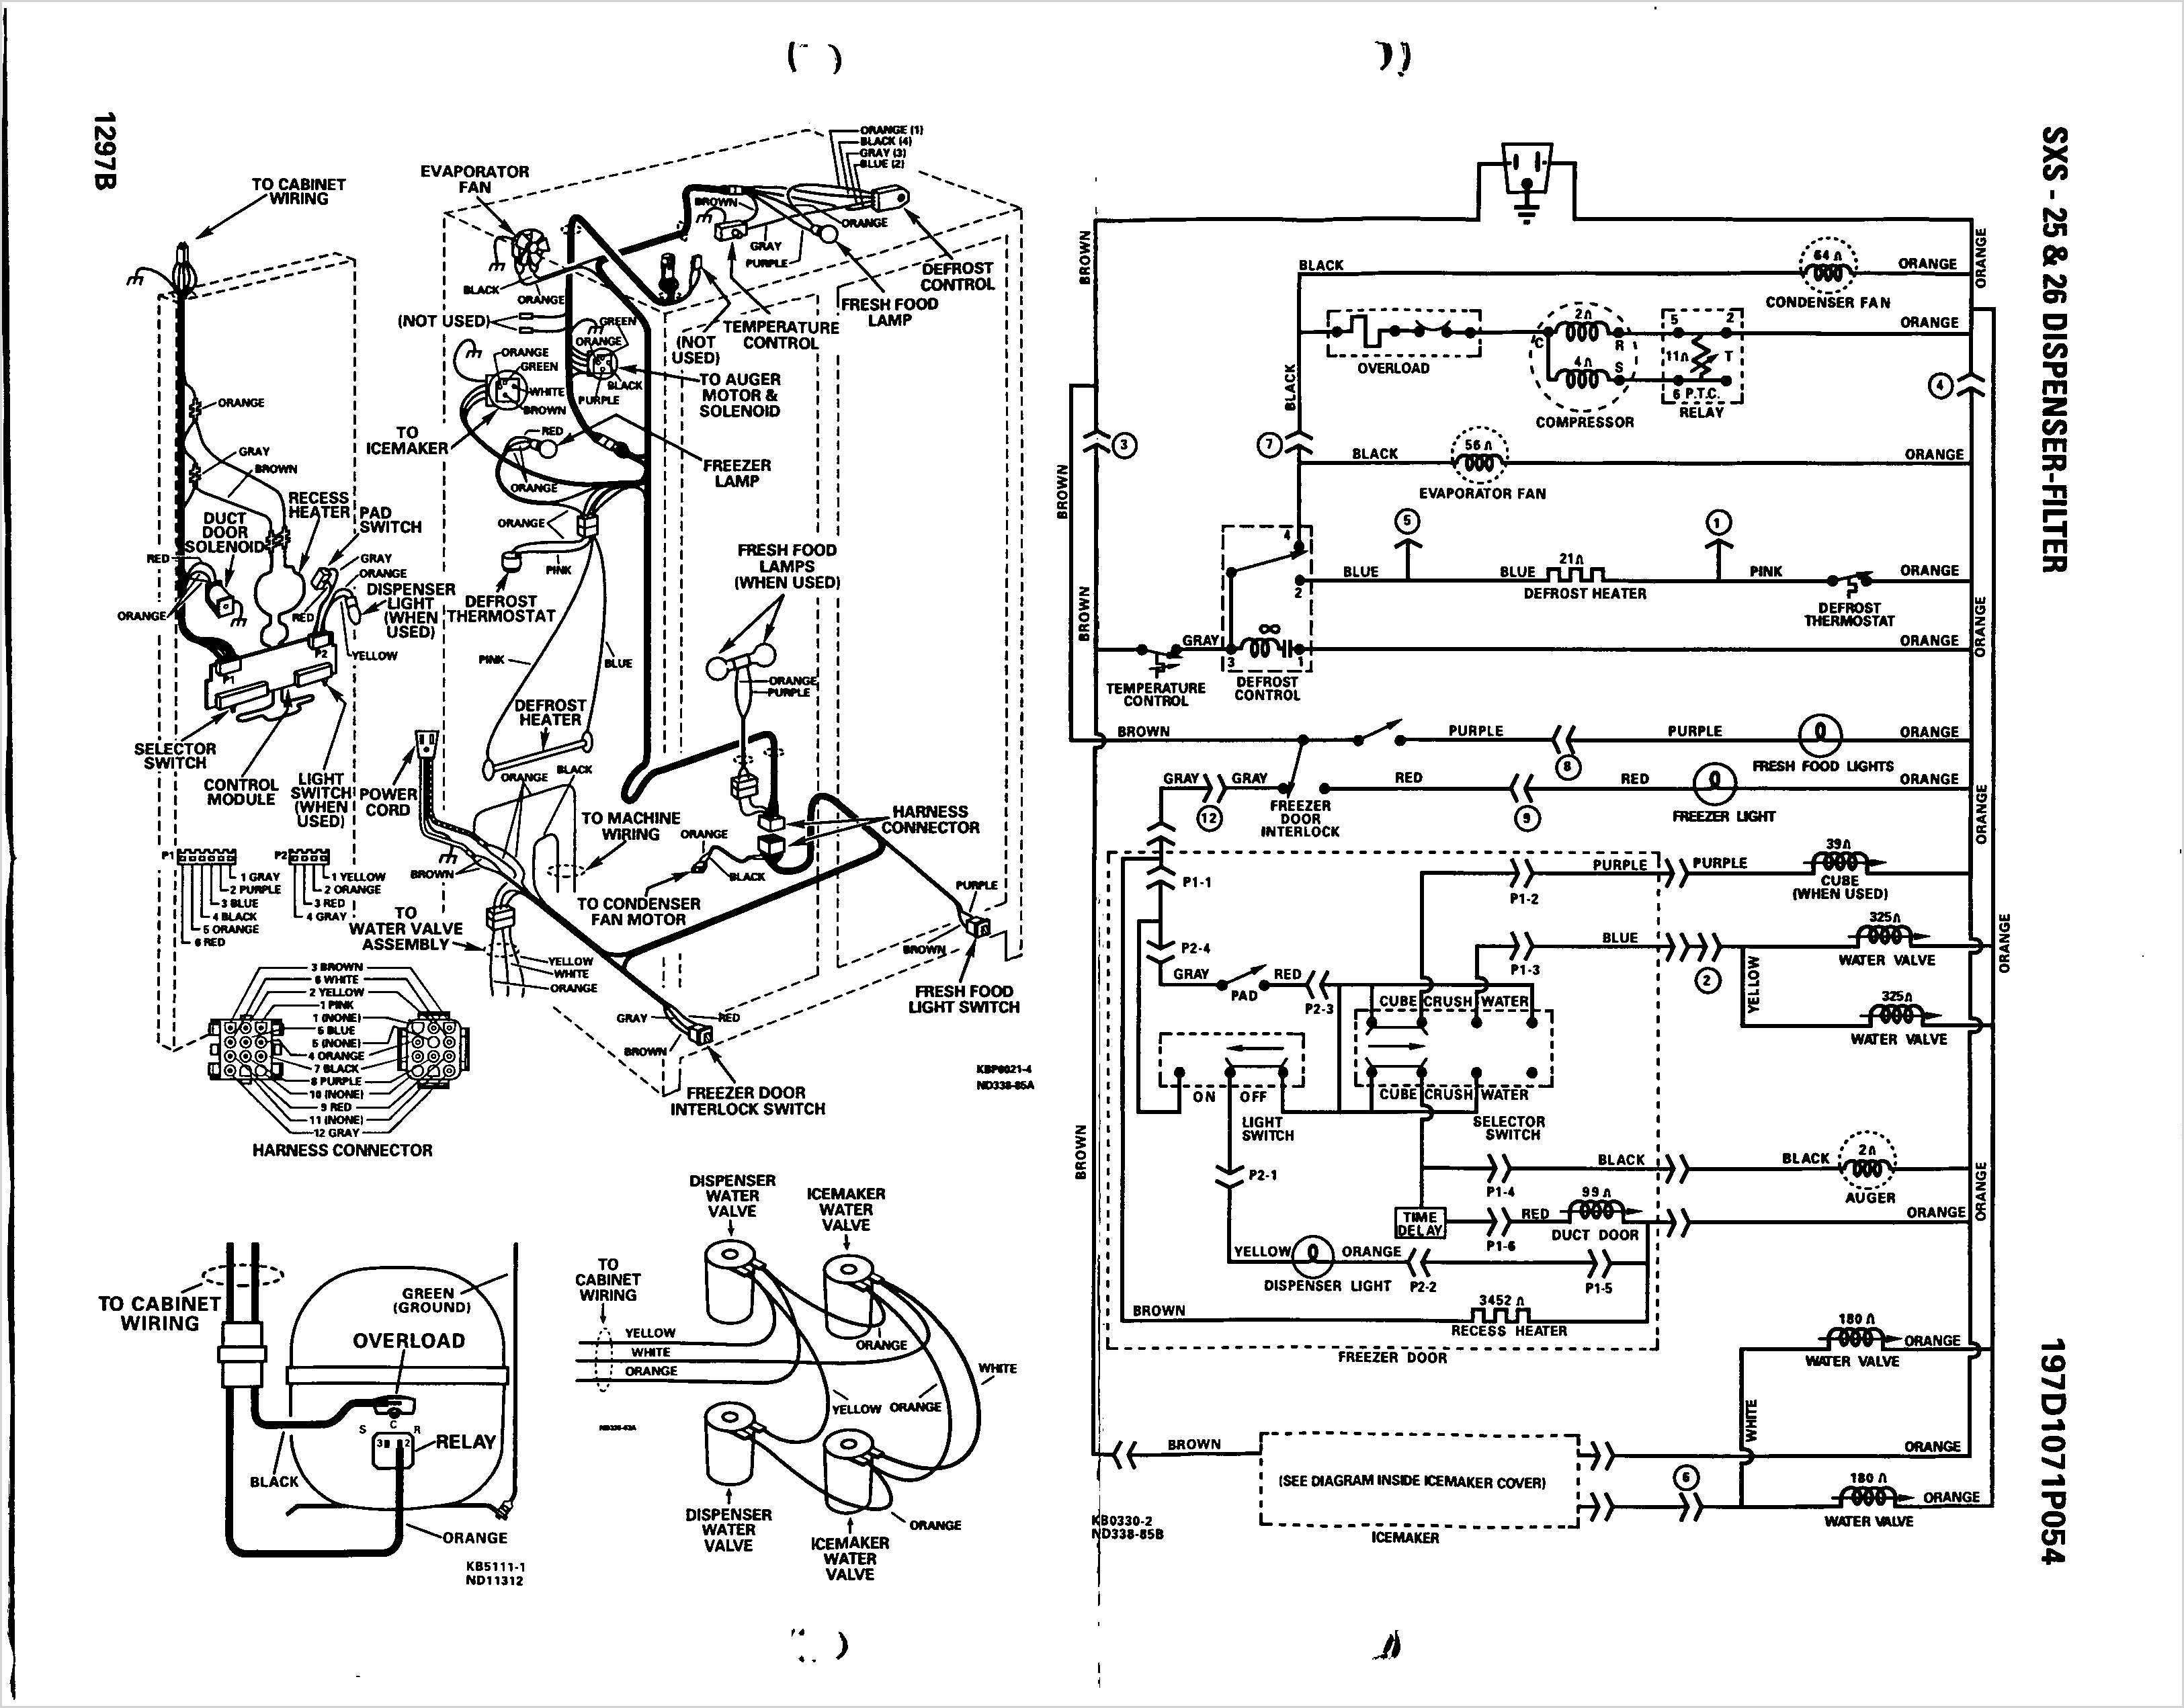 Ge Stove Wiring Diagram - Ge Stove Wiring Diagram Download Ge Refrigerator Wiring Diagram Ice Maker Luxury Circuit Ge Profile Download Wiring Diagram Sheets Detail Name Ge Stove 18j